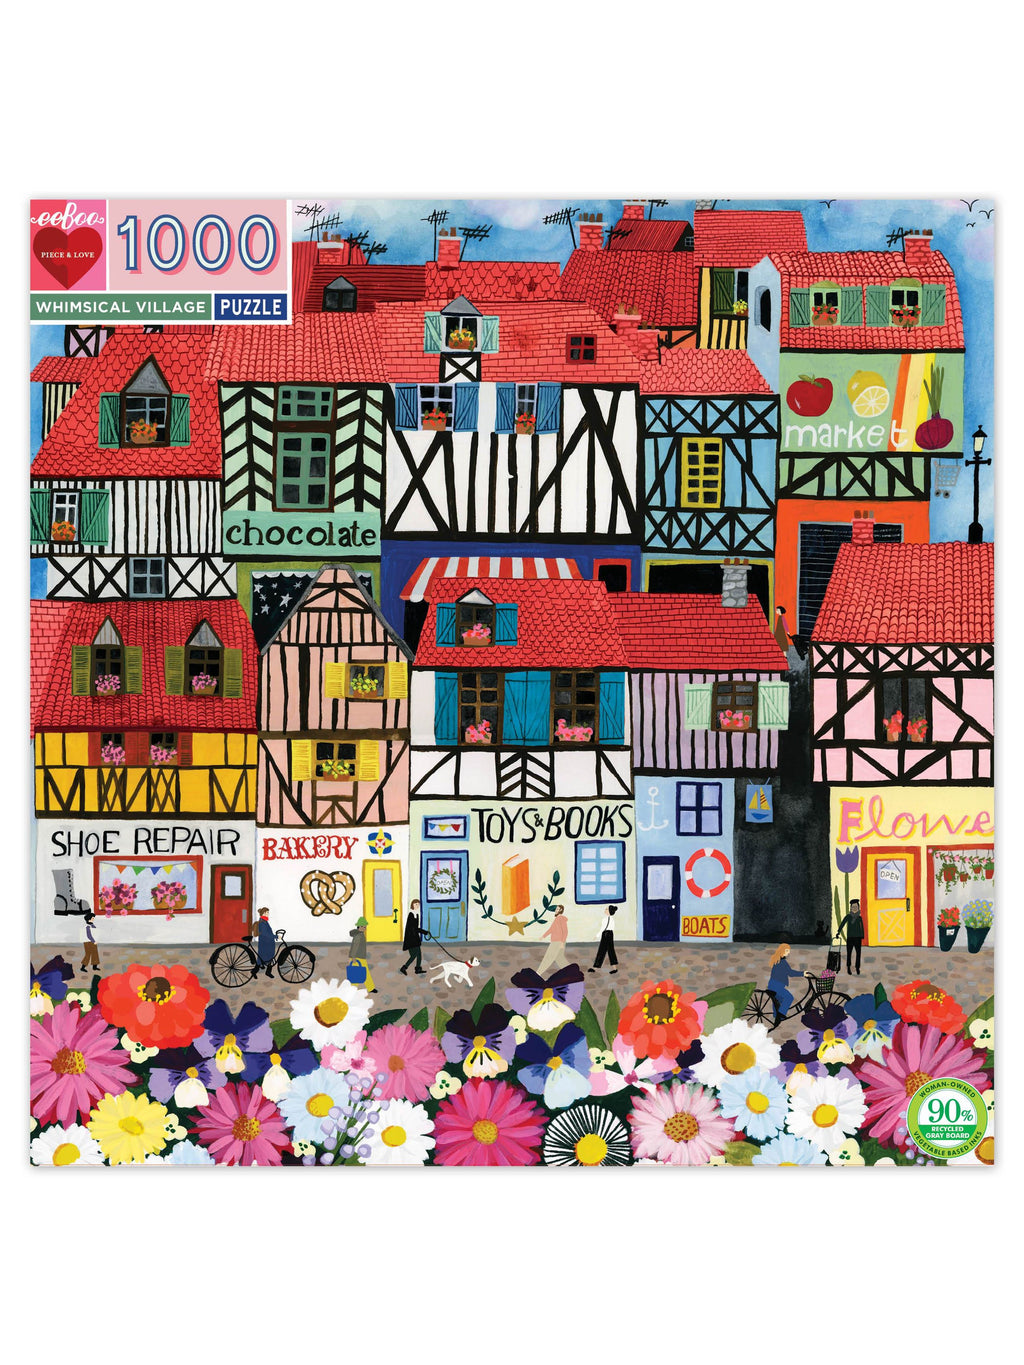 Whimsical Village - 1000pc Puzzle